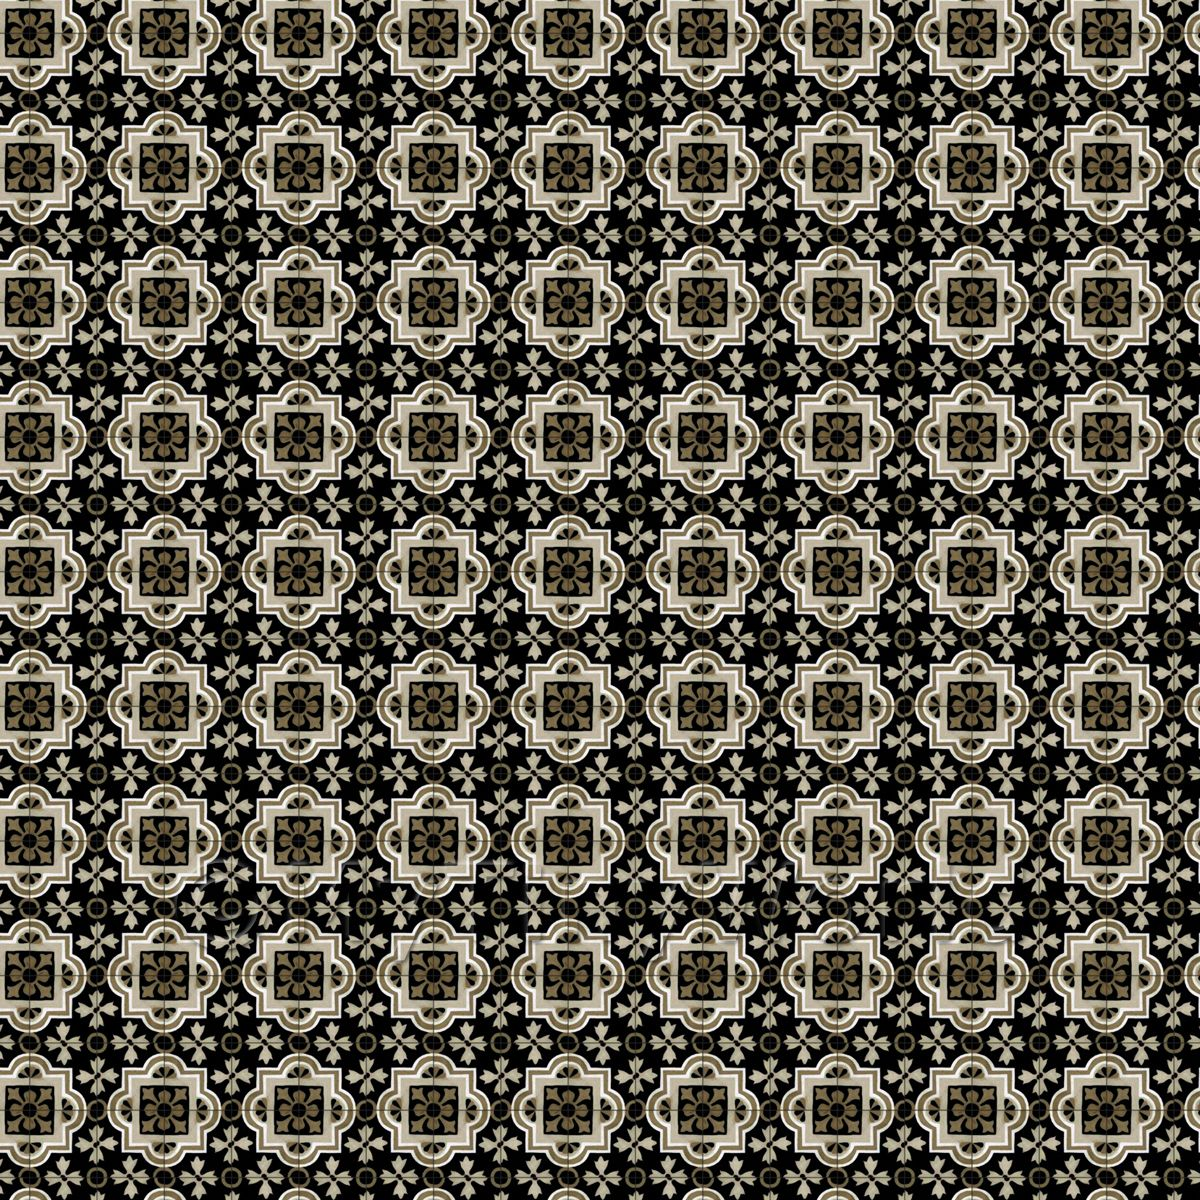 1:24th Shades Of Brown And Black Ornate Pattern Tile Sheet